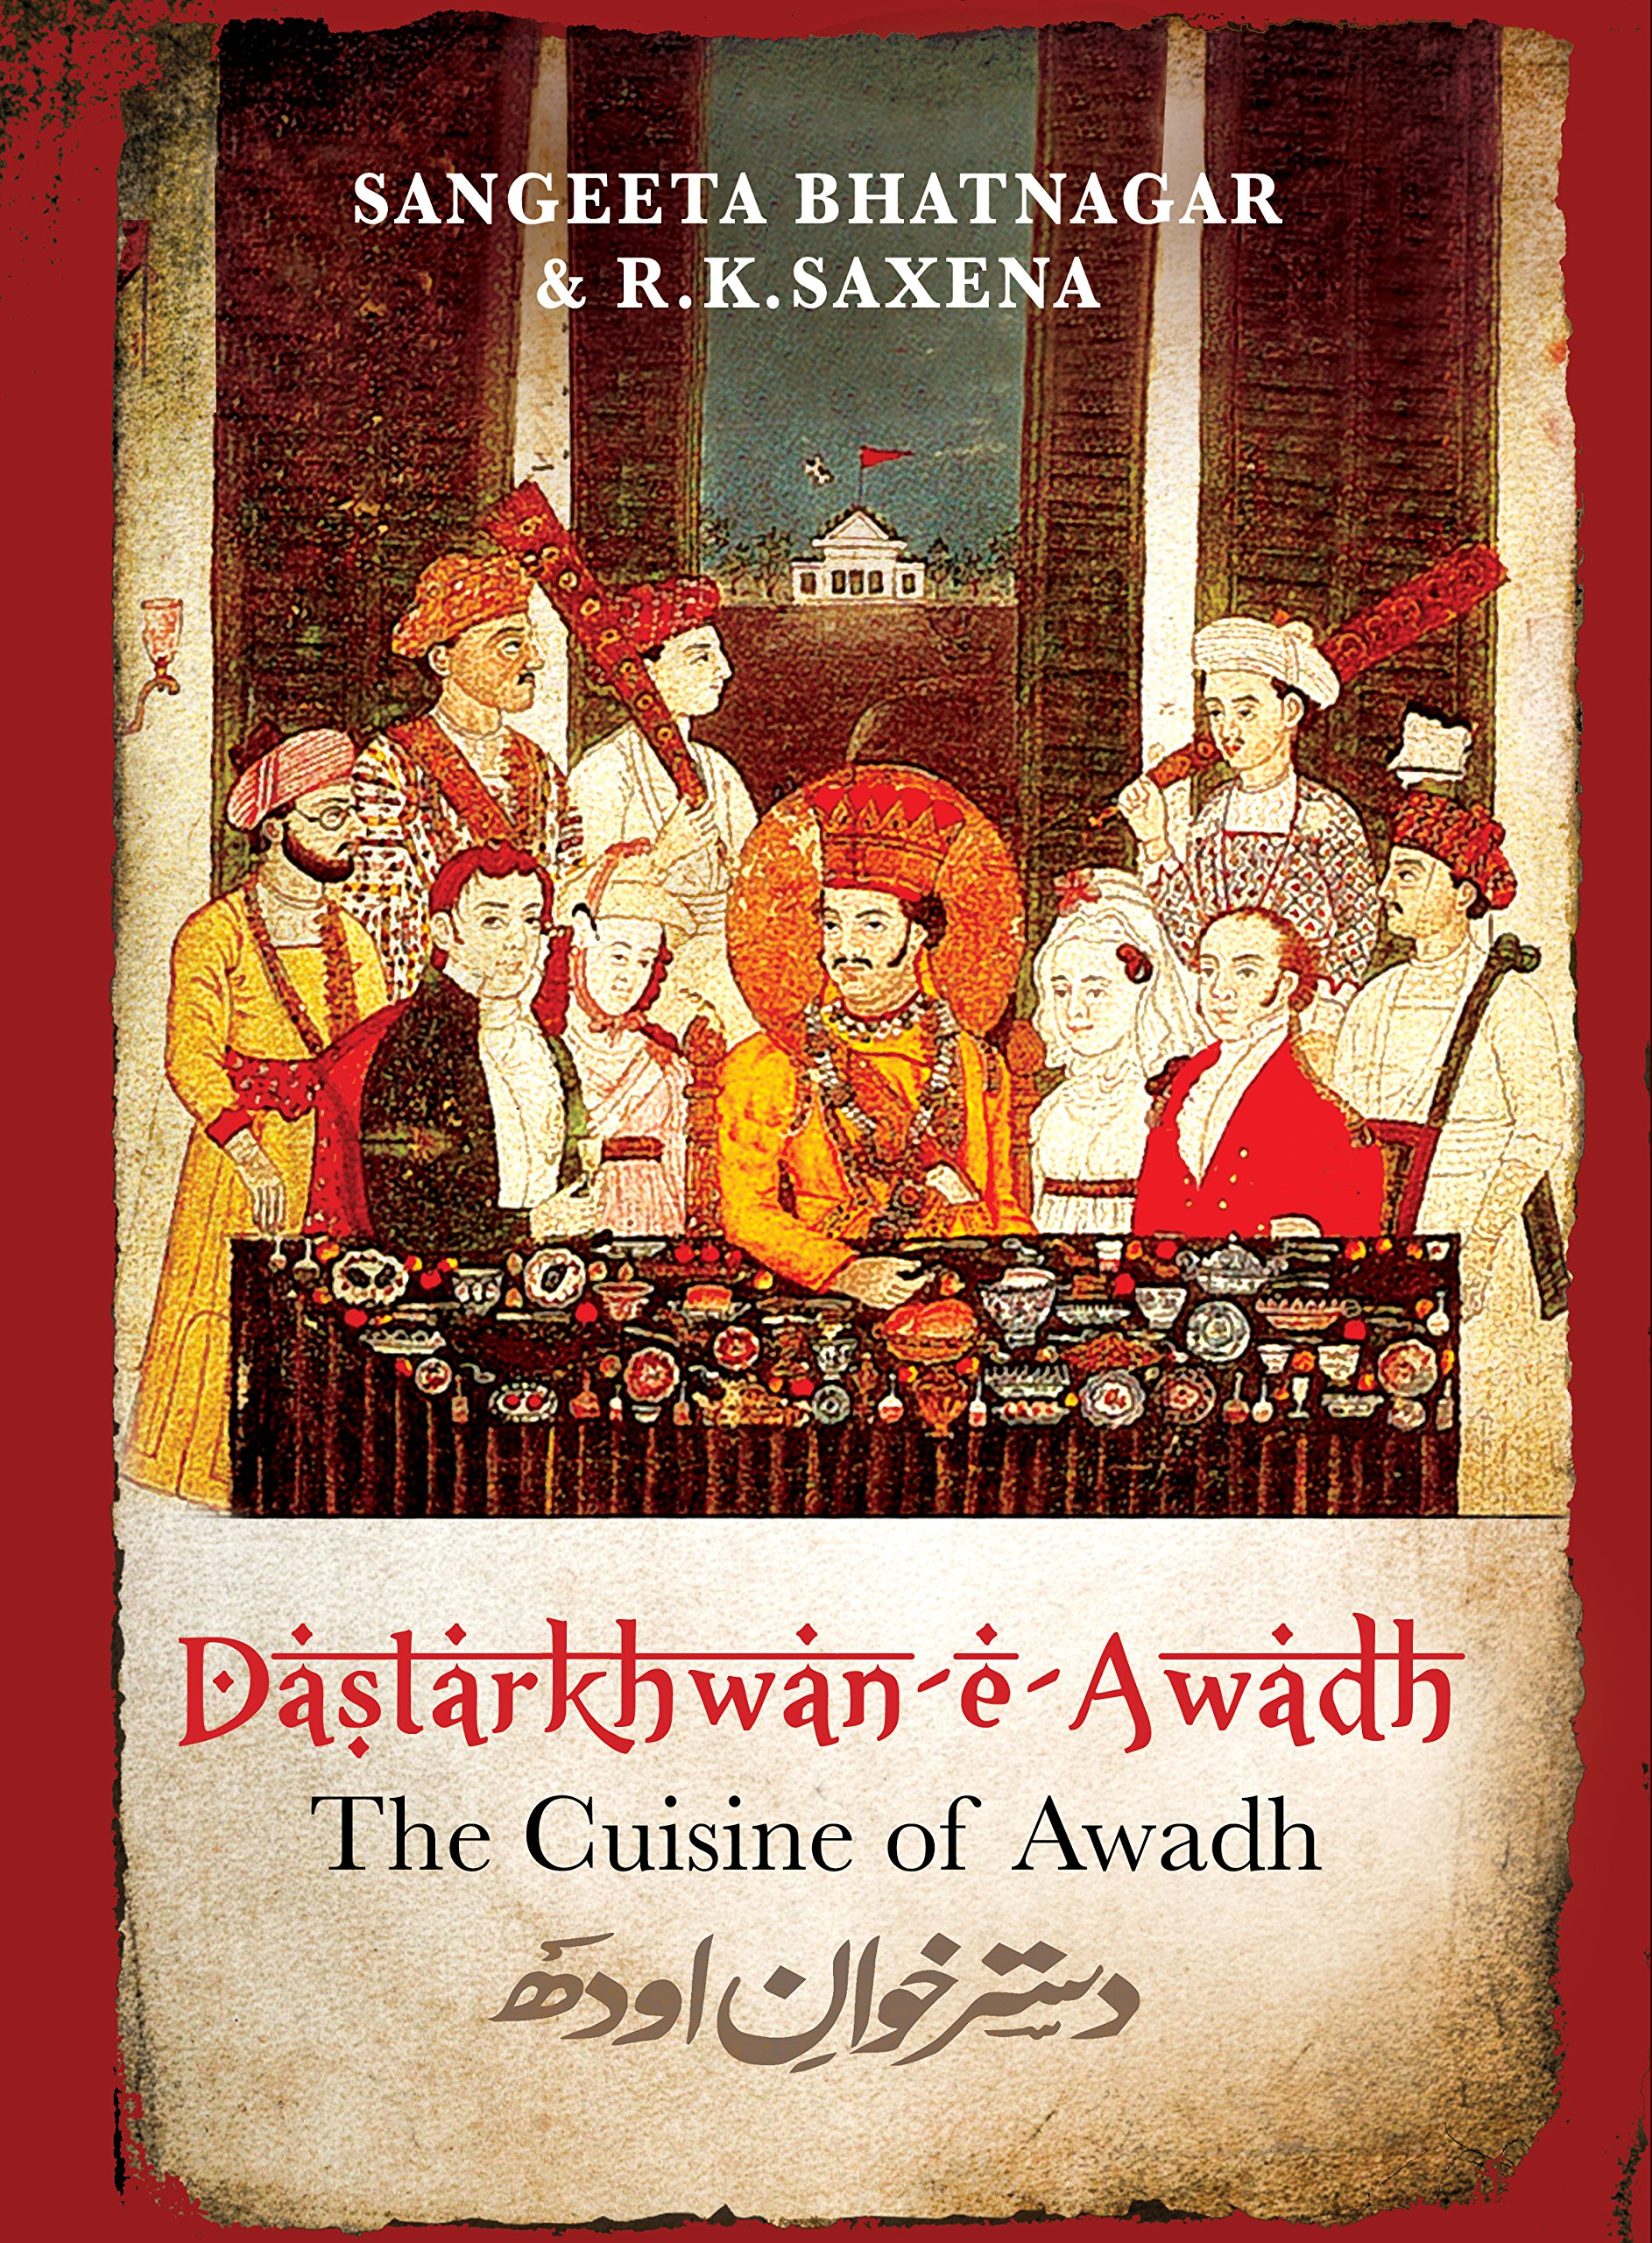 Buy dastarkhwan e awadh the cuisine of awadh book online at low buy dastarkhwan e awadh the cuisine of awadh book online at low prices in india dastarkhwan e awadh the cuisine of awadh reviews ratings amazon forumfinder Images